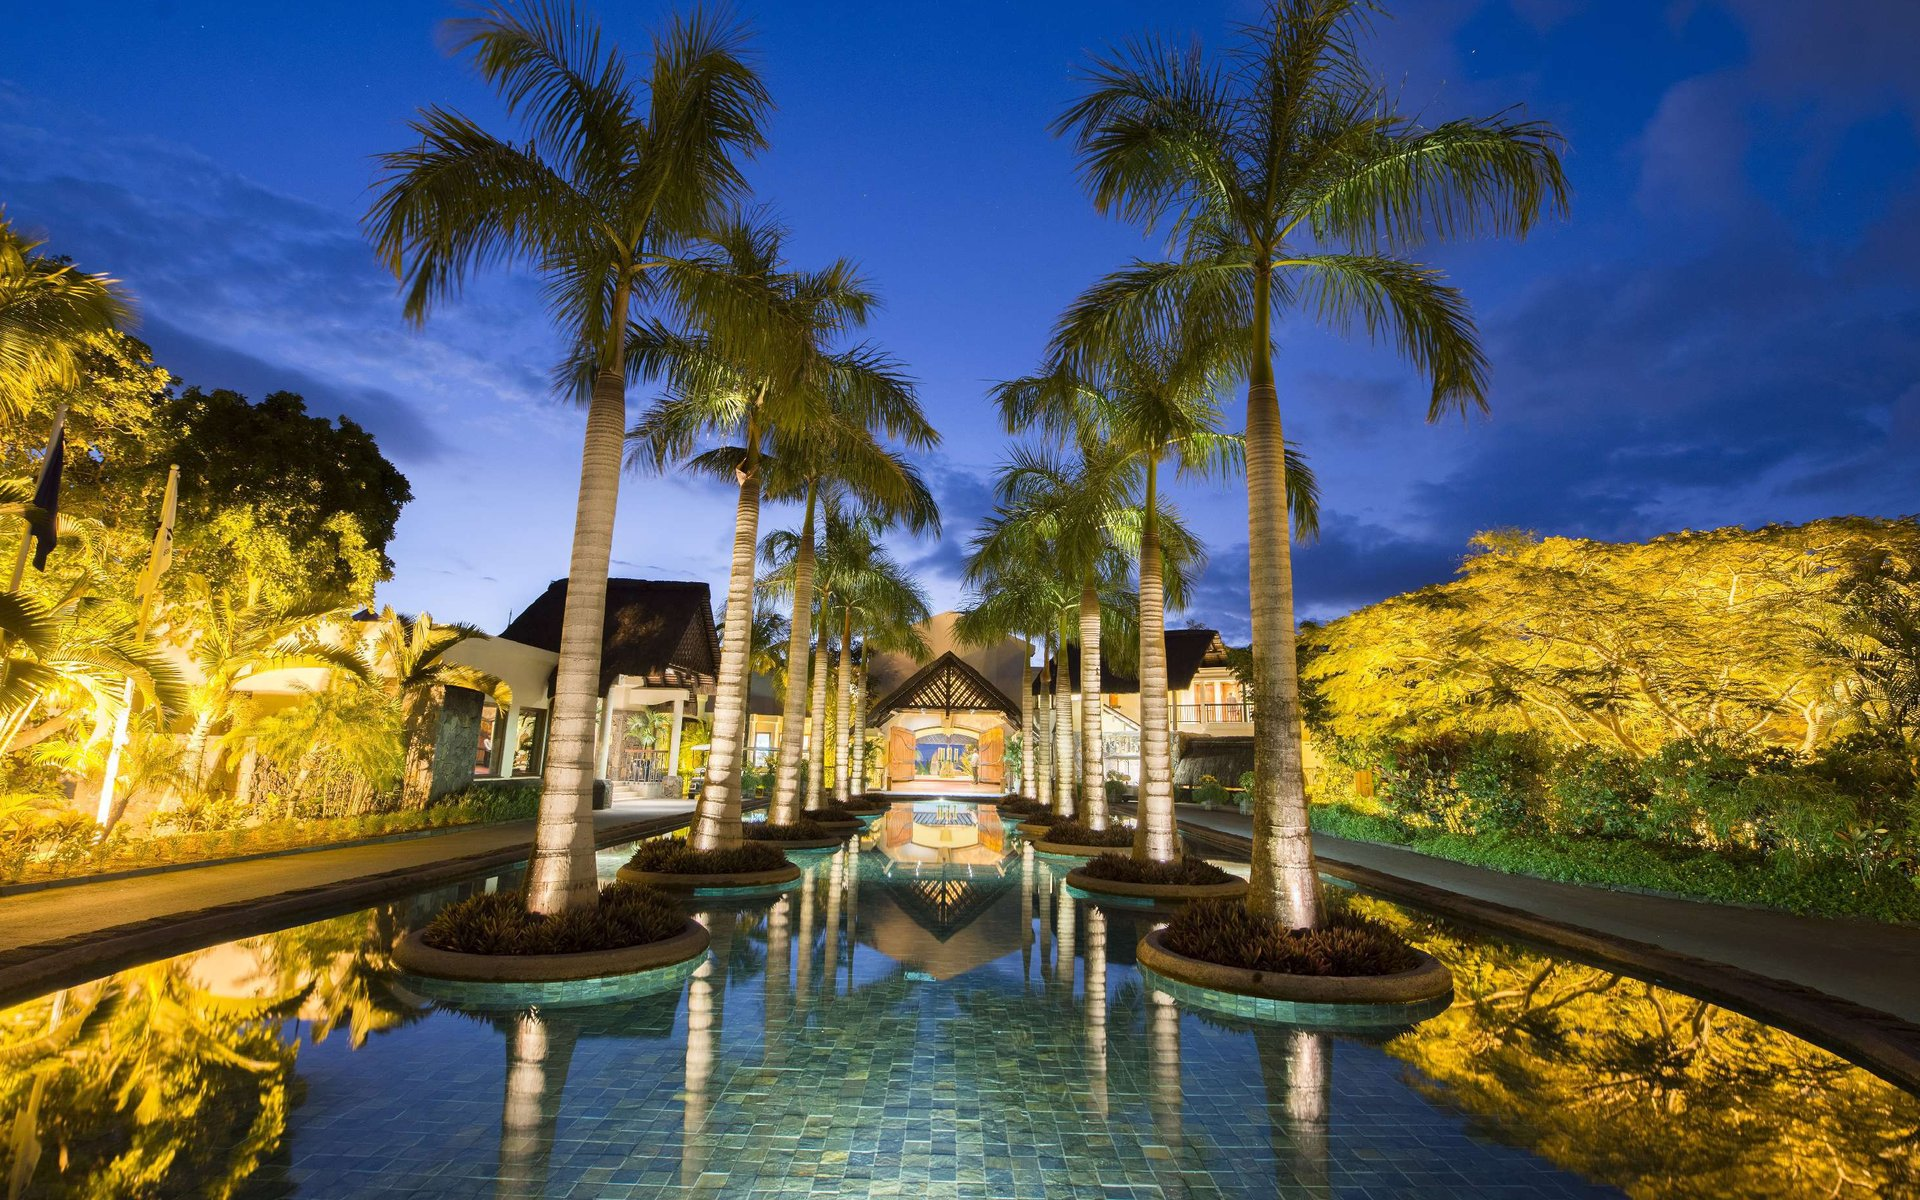 Hotels Mauritius | The full list of hotels in Mauritius